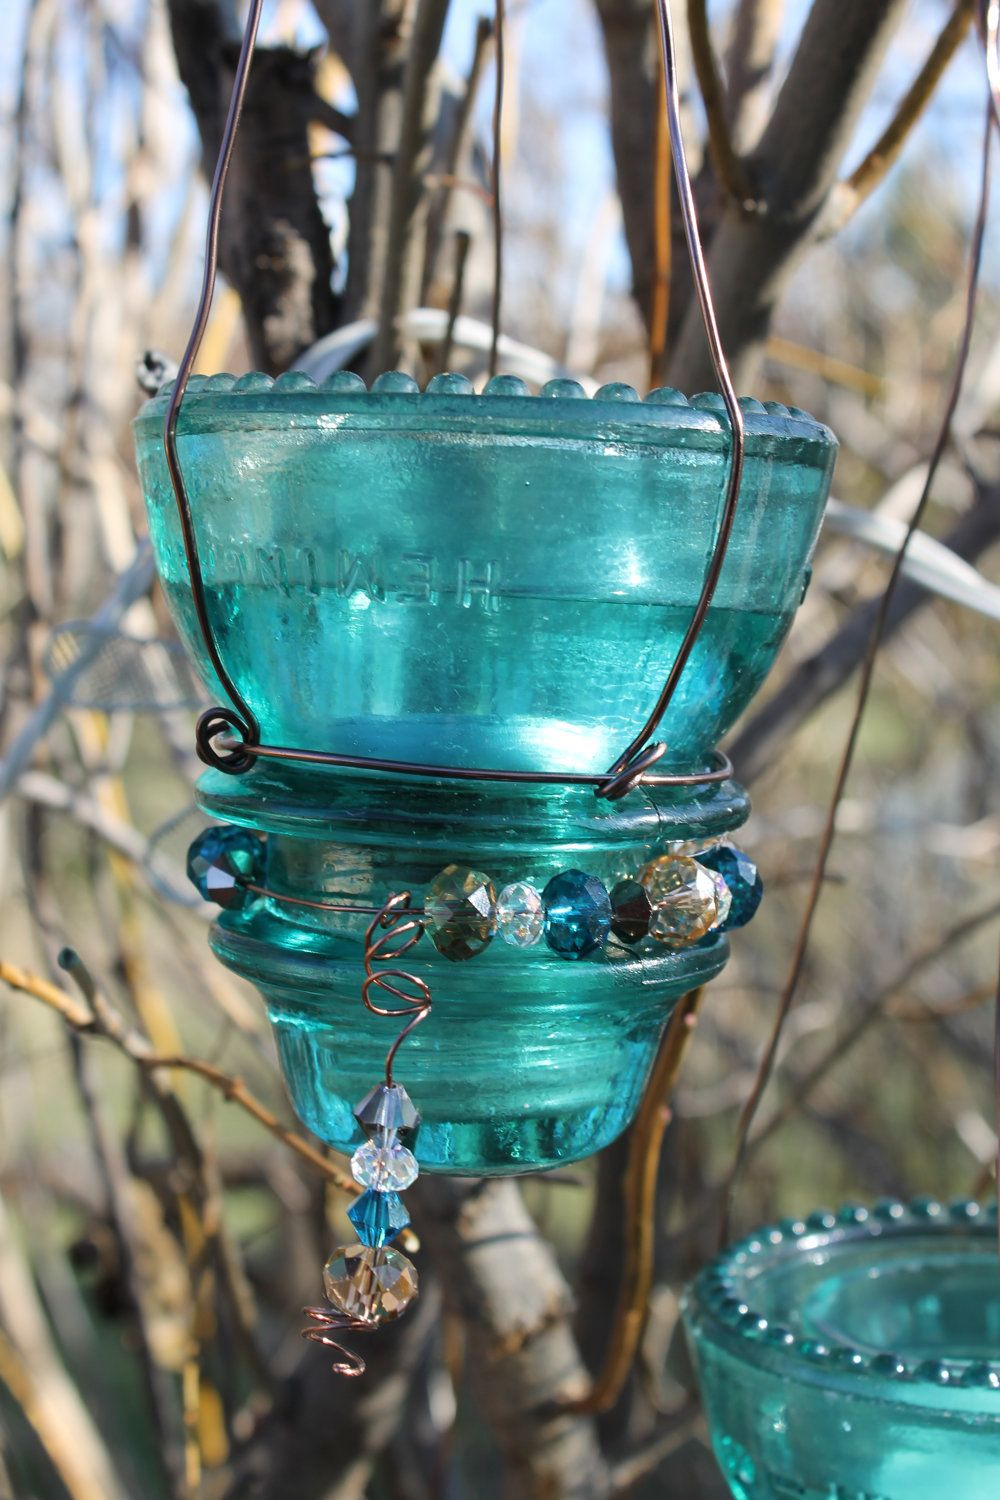 So normally, I just sell my finds, however my wife had something special in mind for these beautiful old Hemingray 45 glass insulators.  These insulators are some of the most common youll see. They were produced from 1938 until the early 1960s.  So to add to their beauty, my wife added copper wire and beading to create these beautiful hanging candle holders. These would be a great addition hanging with a burning tea light on a deck or from a tree.  From the top of the hook to the bottom of…